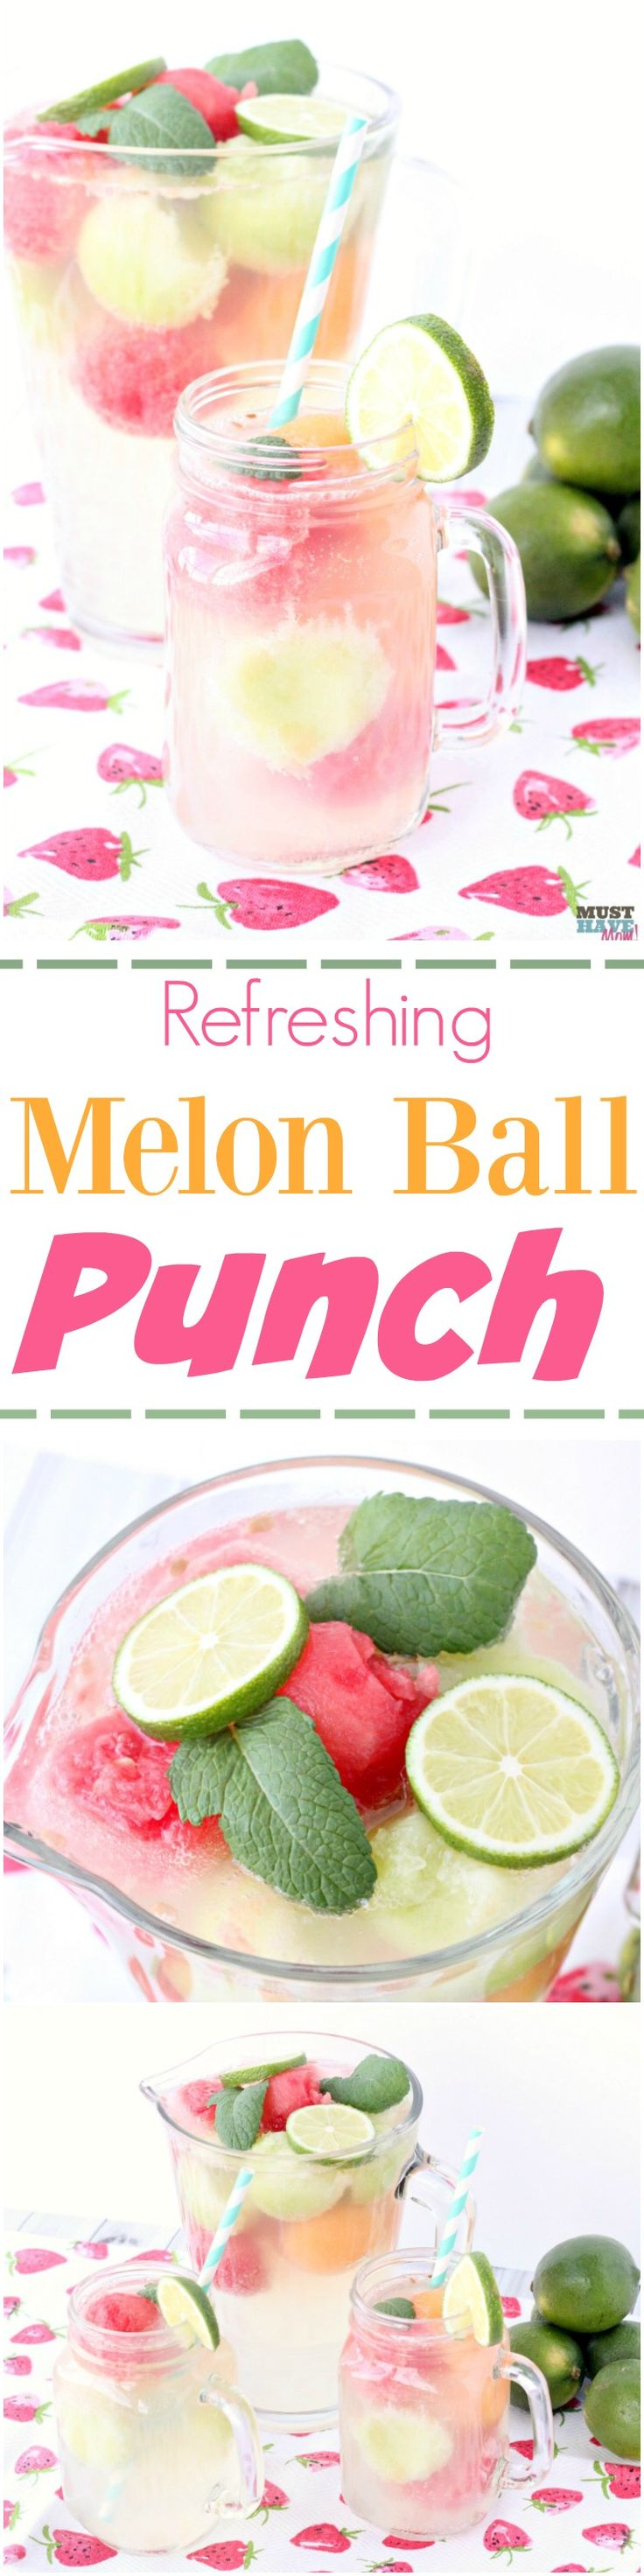 Refreshing Melon Ball Punch recipe combines sparkling white grape juice, lemonade and 7 up for a refreshing summer melon ball drink recipe!